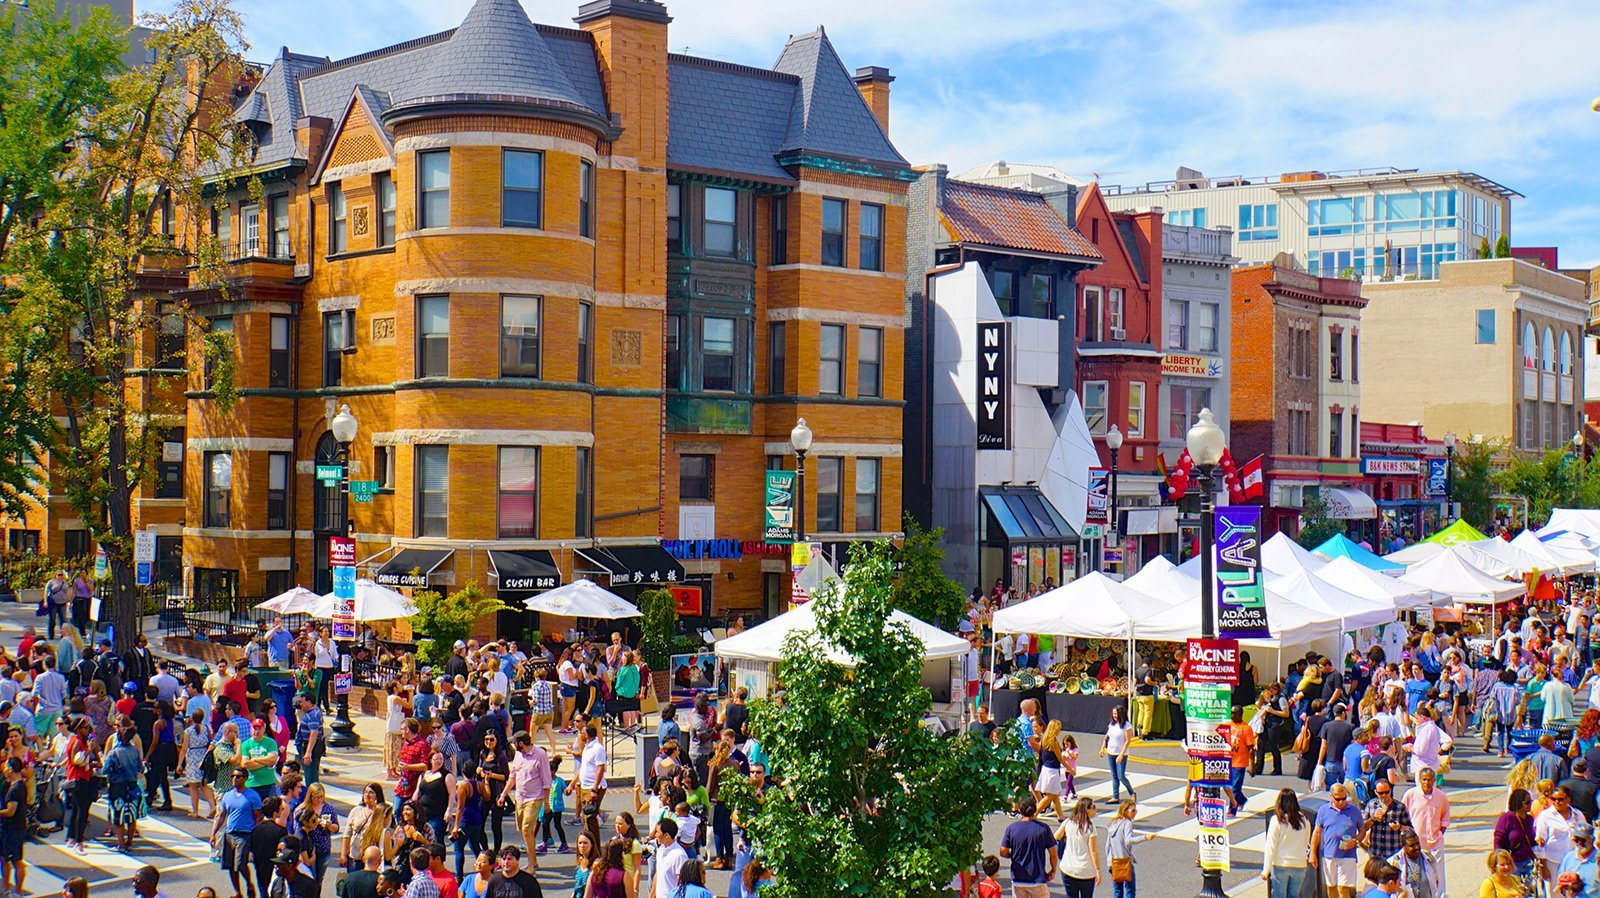 Photo of an outdoor festival in the Washington D.C. neighborhhood of Adams Morgan—a culturally diverse neighborhood in Northwest Washington, D.C., centered at the intersection of 18th Street and Columbia Road